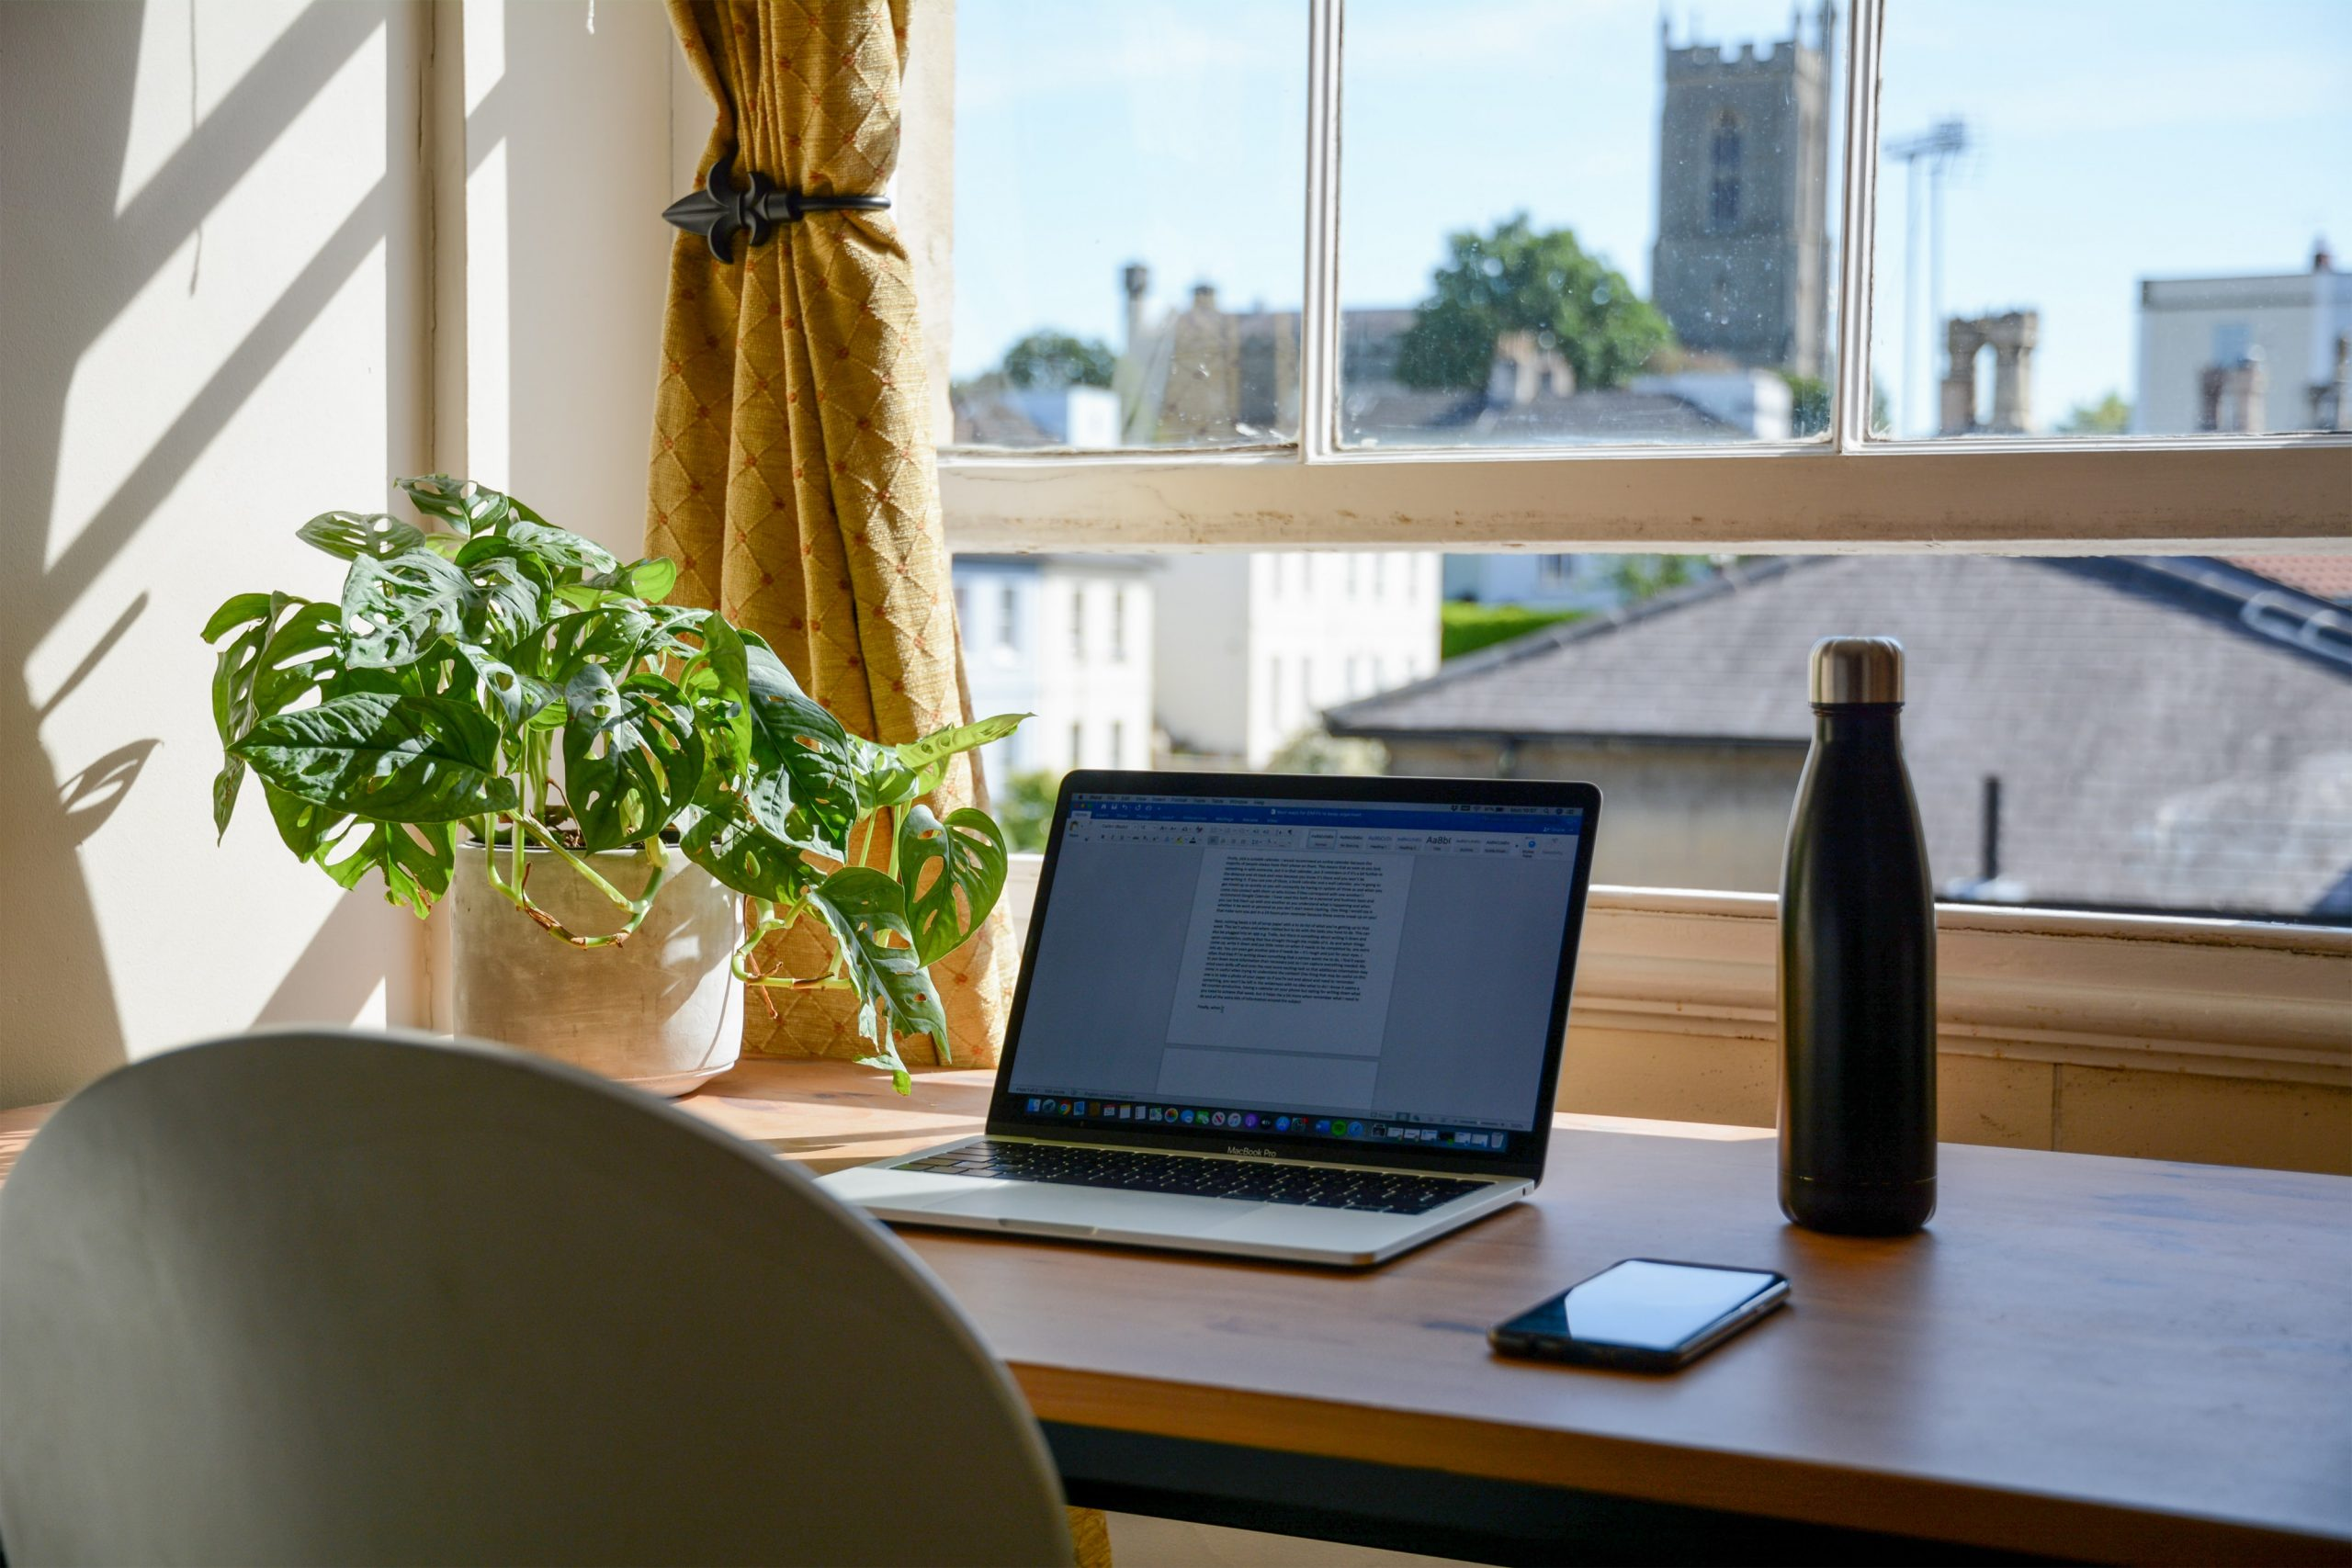 A home office set-up, with a laptop on a table near a window